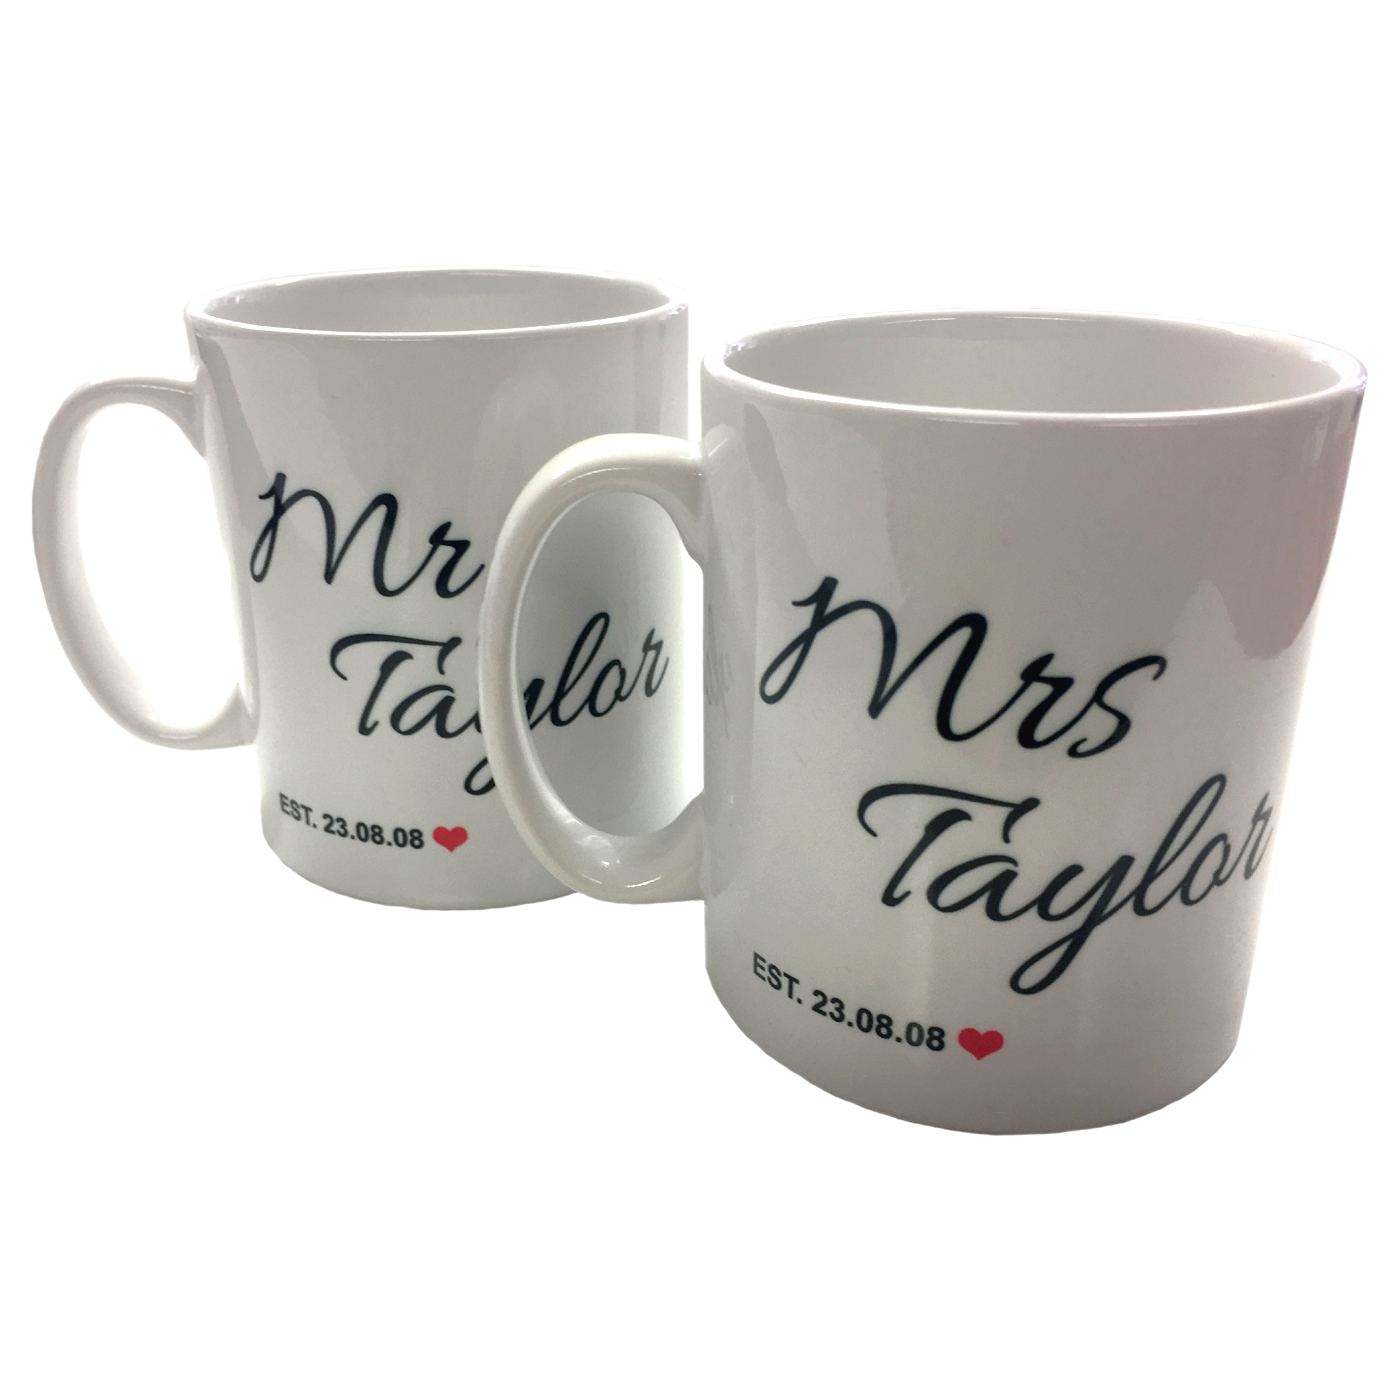 Wedding Gifts Mr And Mrs: Personalised Wedding Gifts